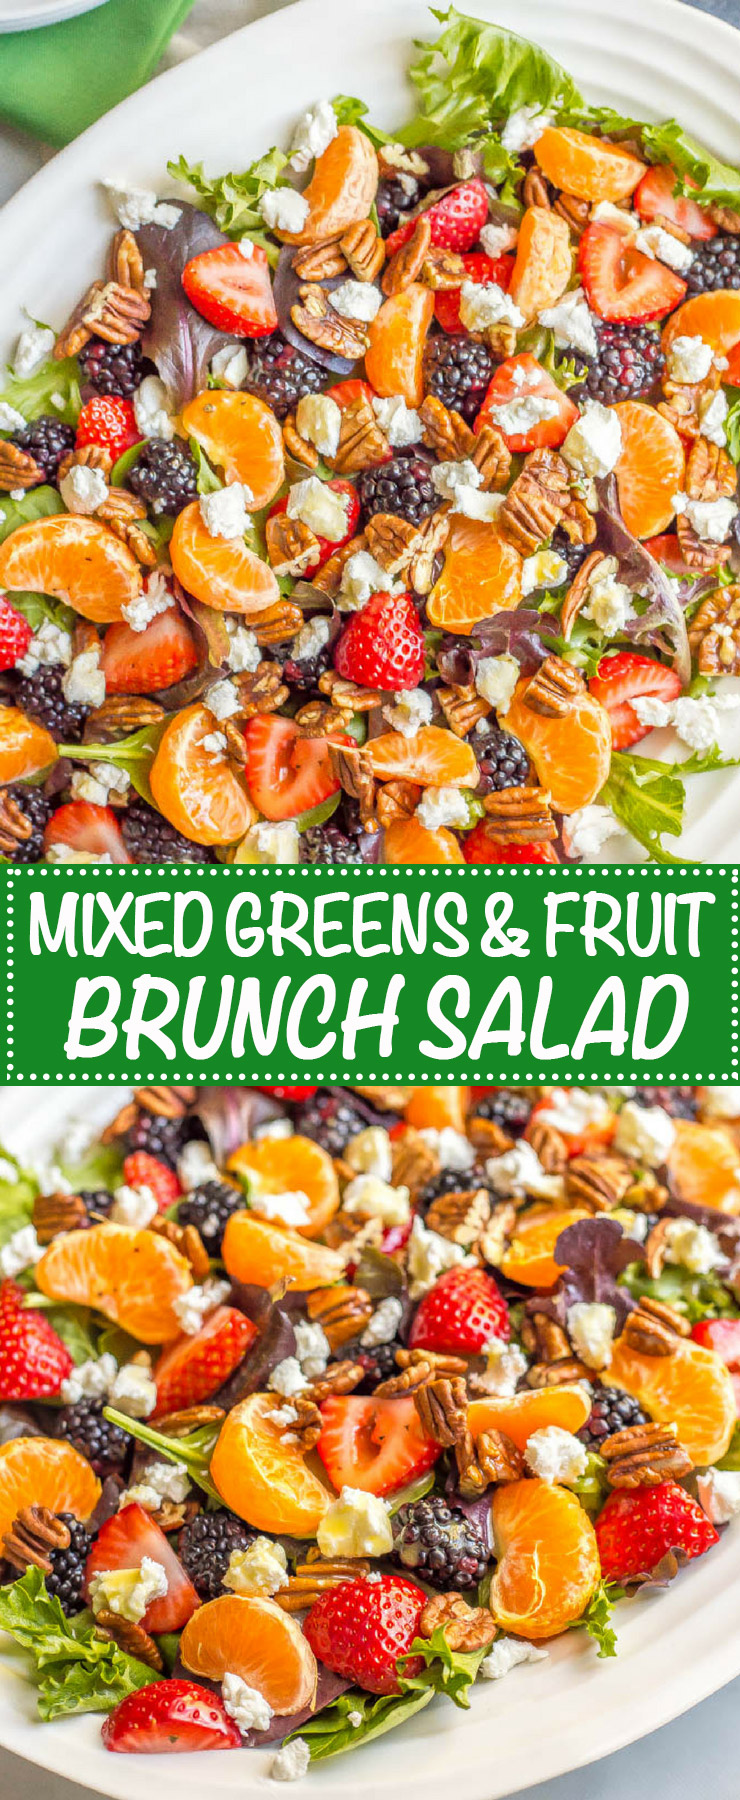 This mixed greens salad with fruit, goat cheese and nuts is perfect for a beautiful side dish or brunch spread! It comes together quickly and is finished with a super easy honey-lime vinaigrette. #easysalad #brunch #vegetarian | www.familyfoodonthetable.com